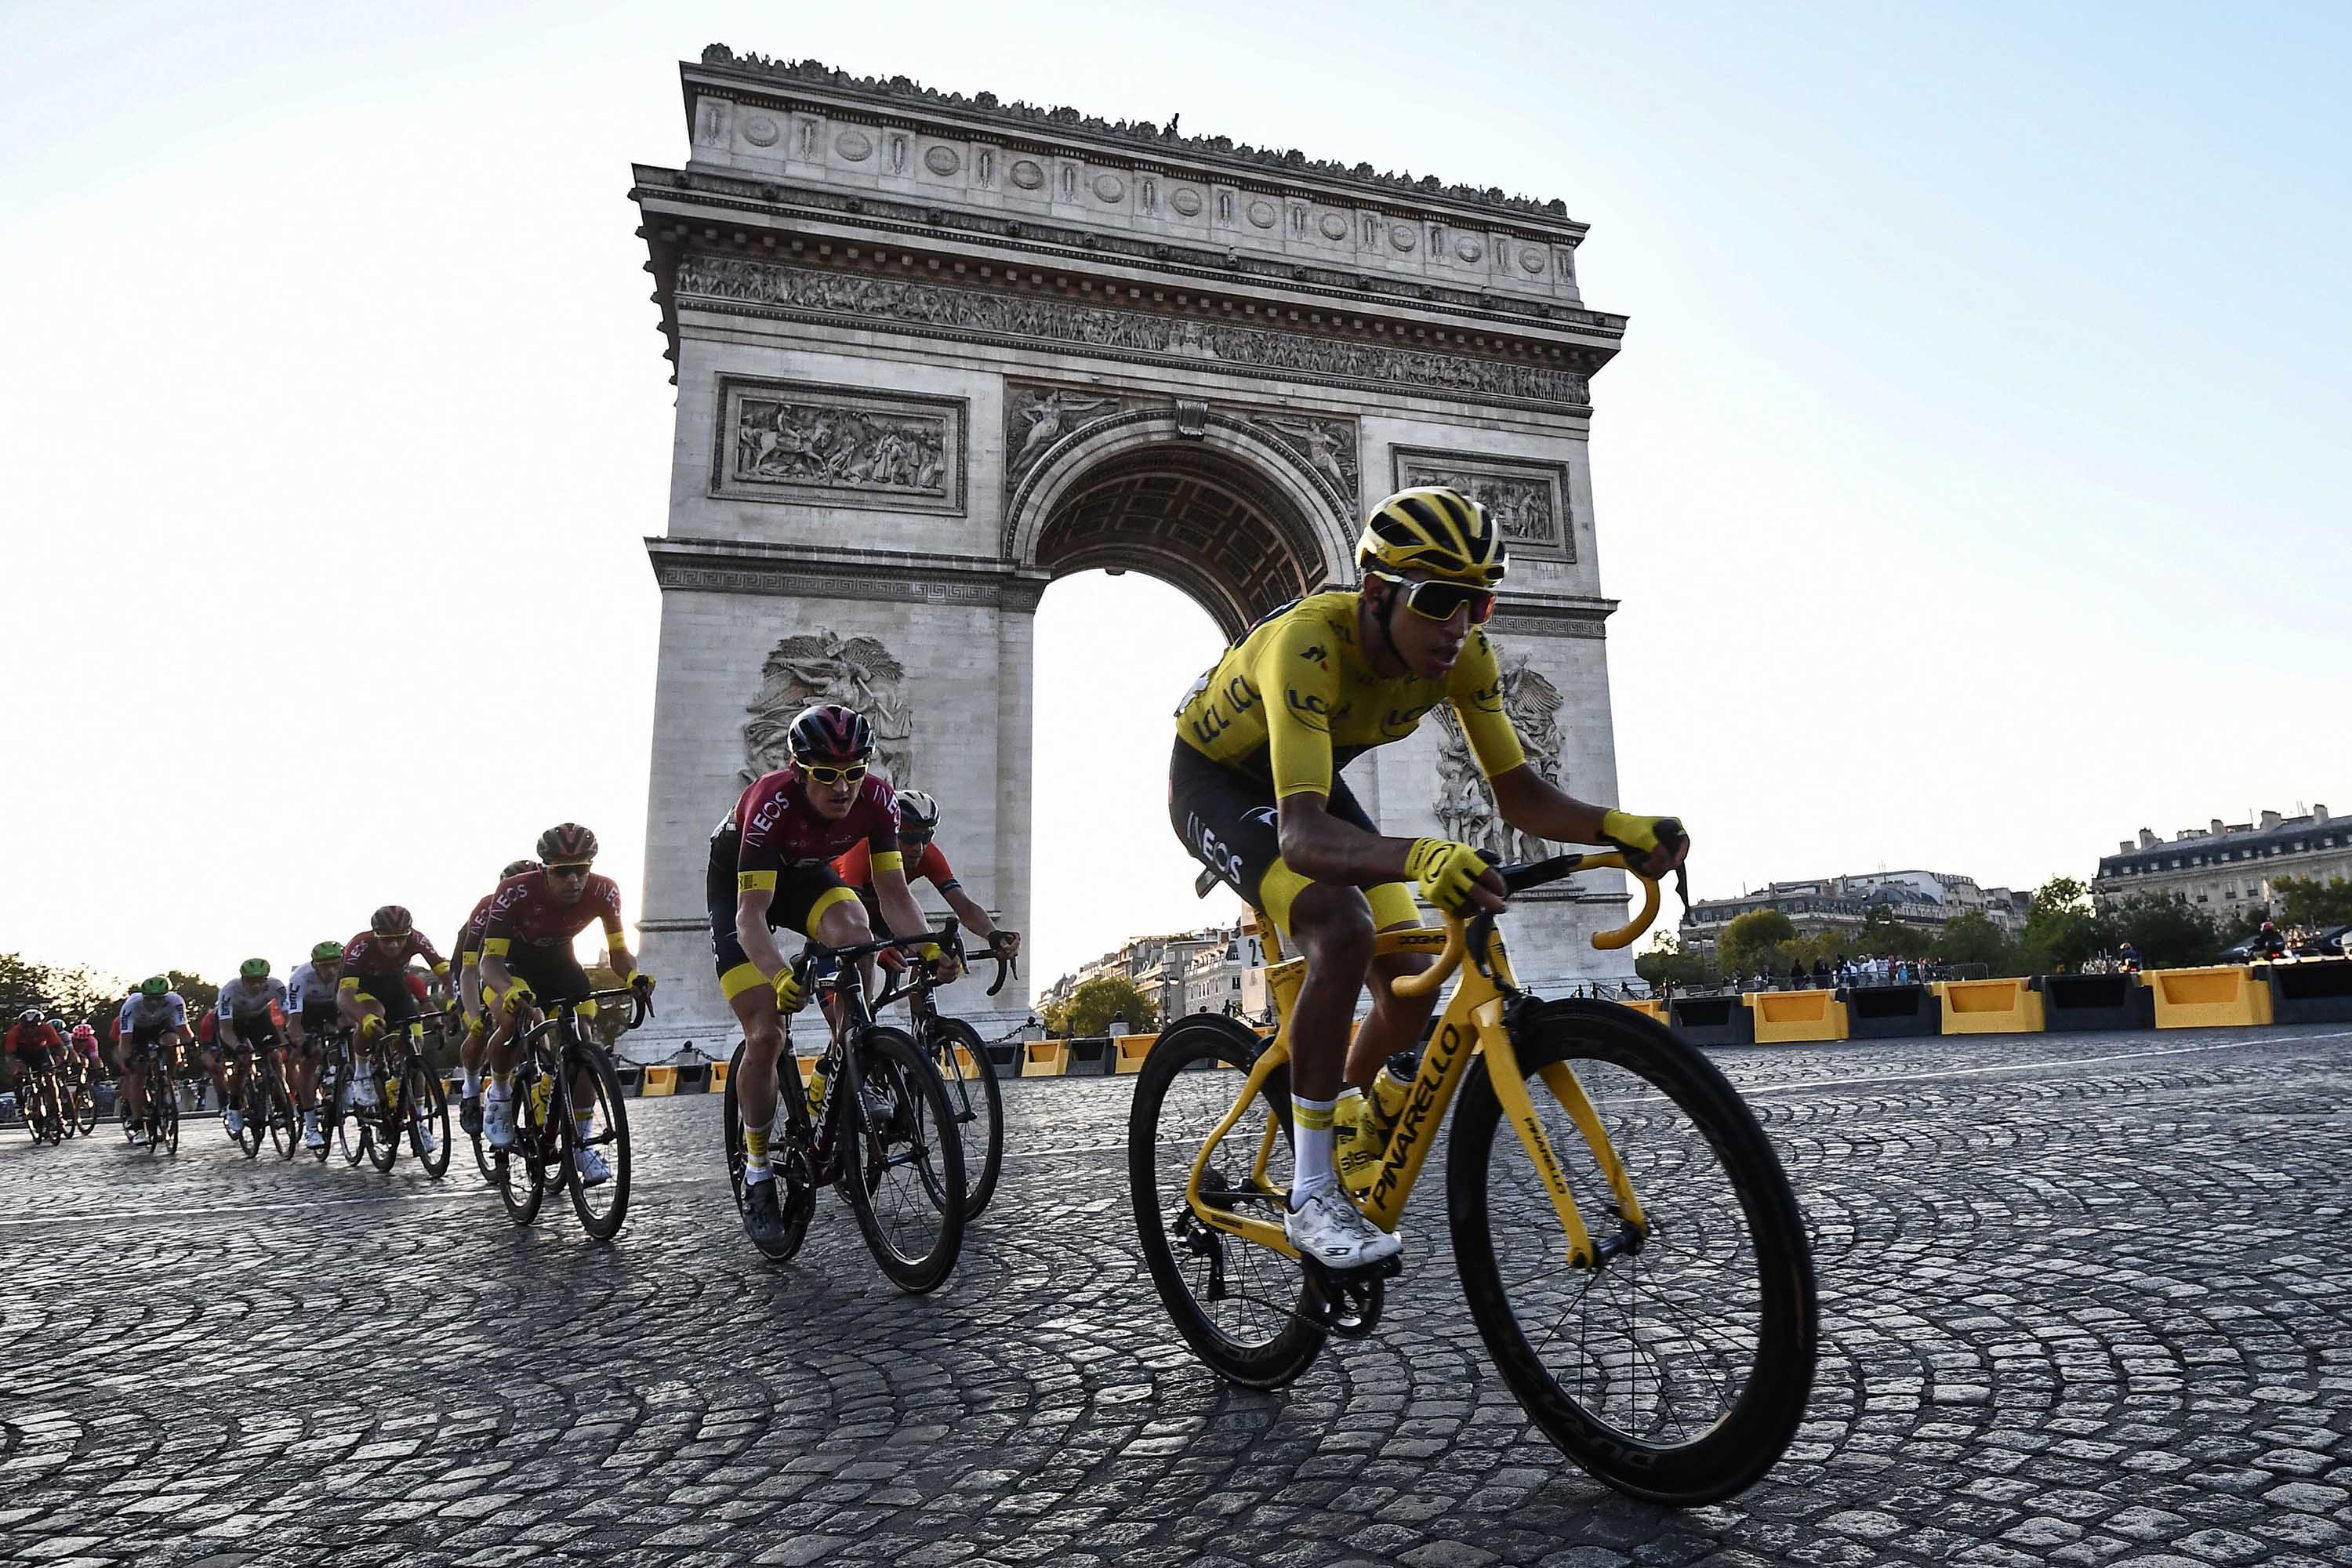 Cyclists ride down the Champs Elysees during the last stage of the 106th edition of the Tour de France in Paris, on July 28, 2019.